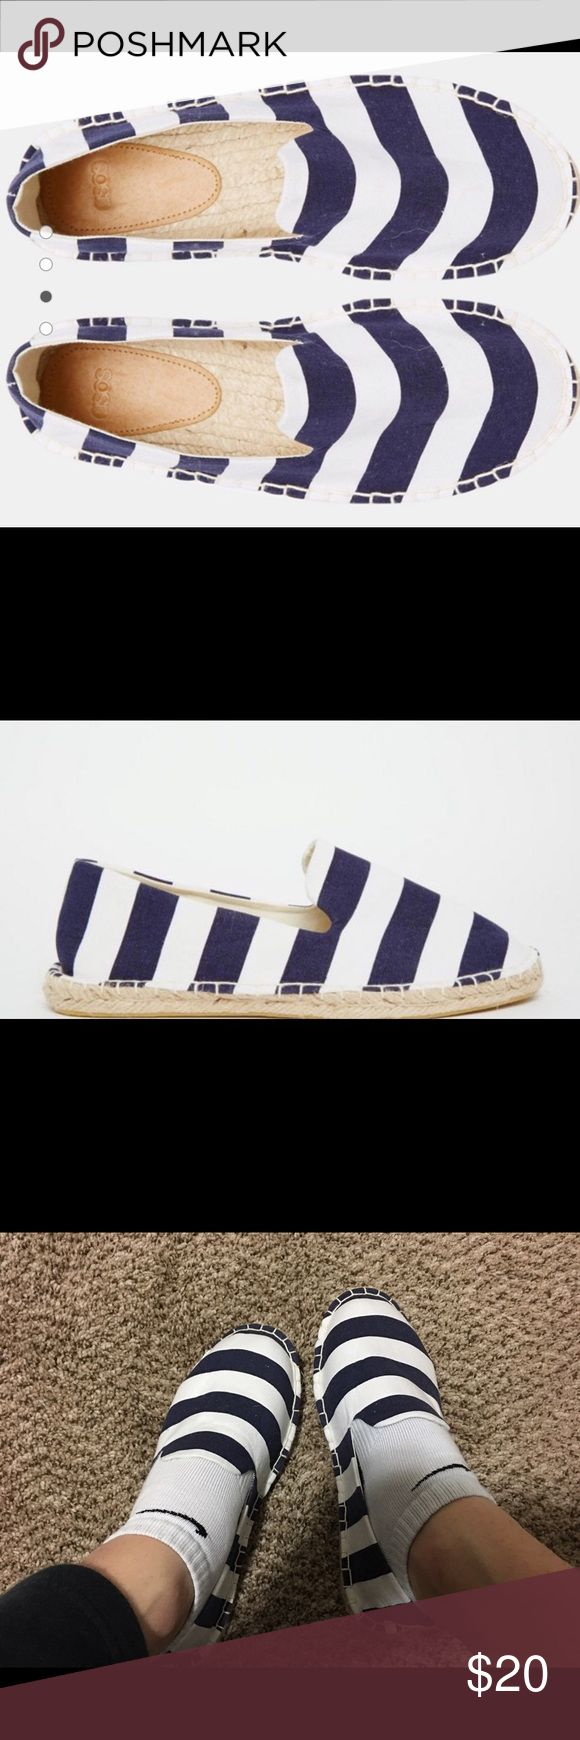 espadrilles by ASOS Brand new in package!!!  Super cute striped blue and white espadrilles shoes.  Also available in pure white!!!  If you bundle you save!!!✌🏽️ ASOS Shoes Espadrilles